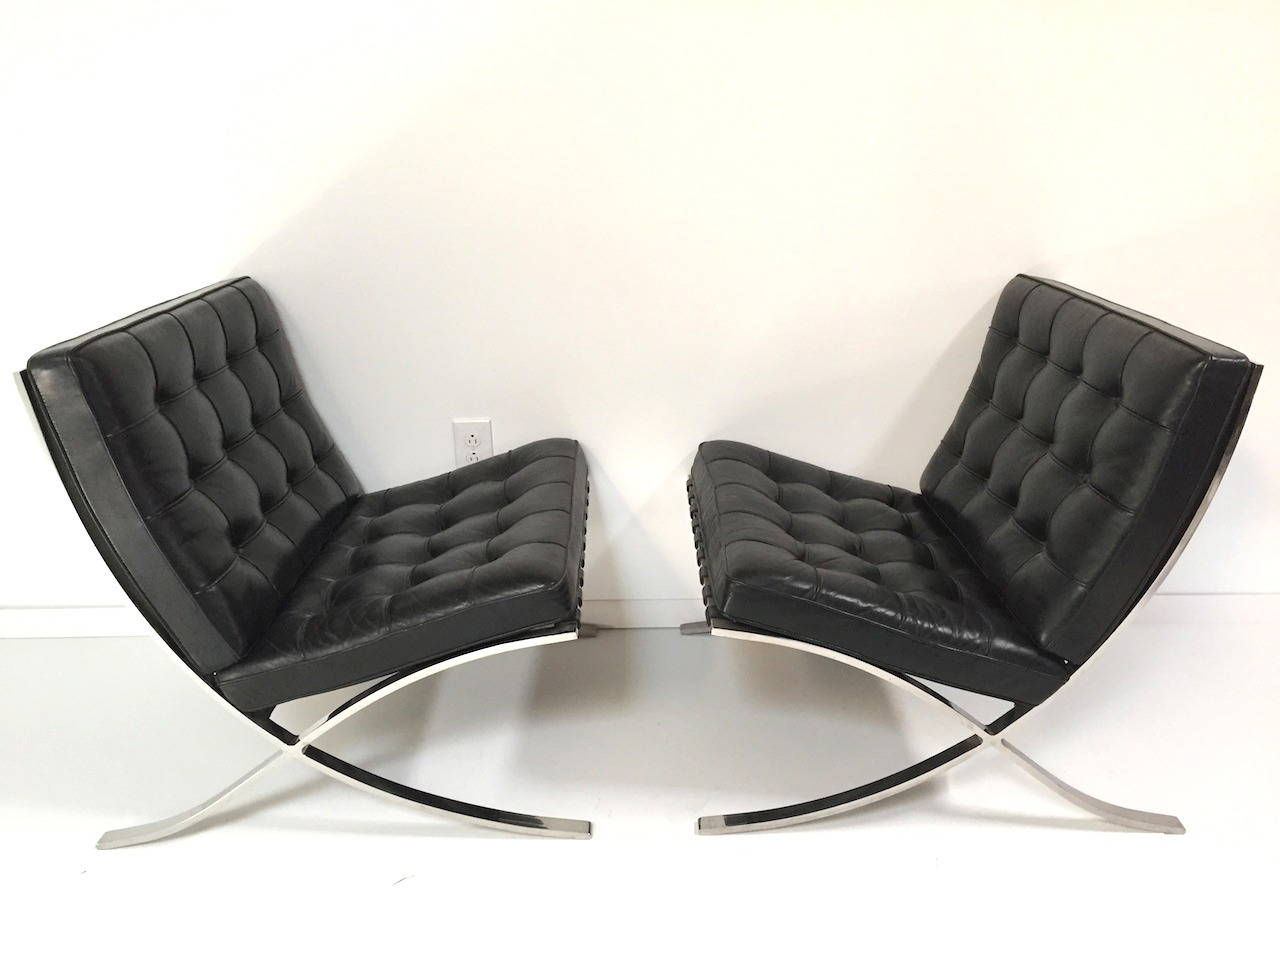 of authentic mies van der rohe black leather barcelona chairs by knoll. Black Bedroom Furniture Sets. Home Design Ideas